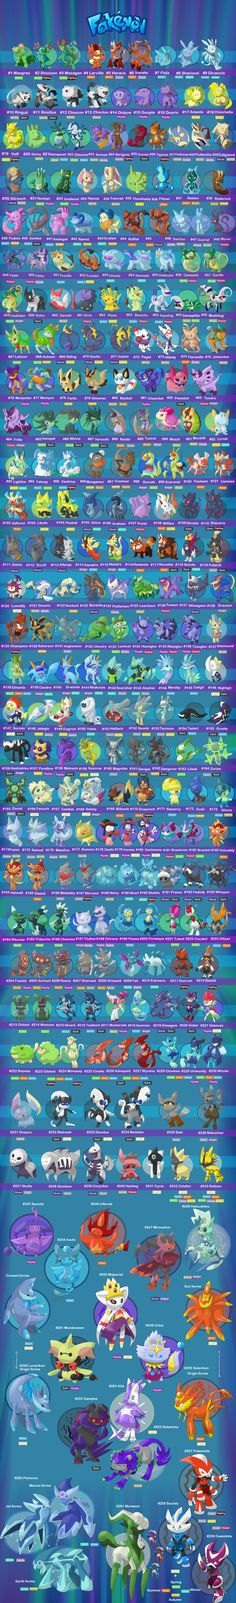 """I finally started my own fakedex about a year ago, and it's continually a work in progress as I revamp and add/remove guys, but here's a good """"final"""" form for now. Oh, the bird legendary ..."""